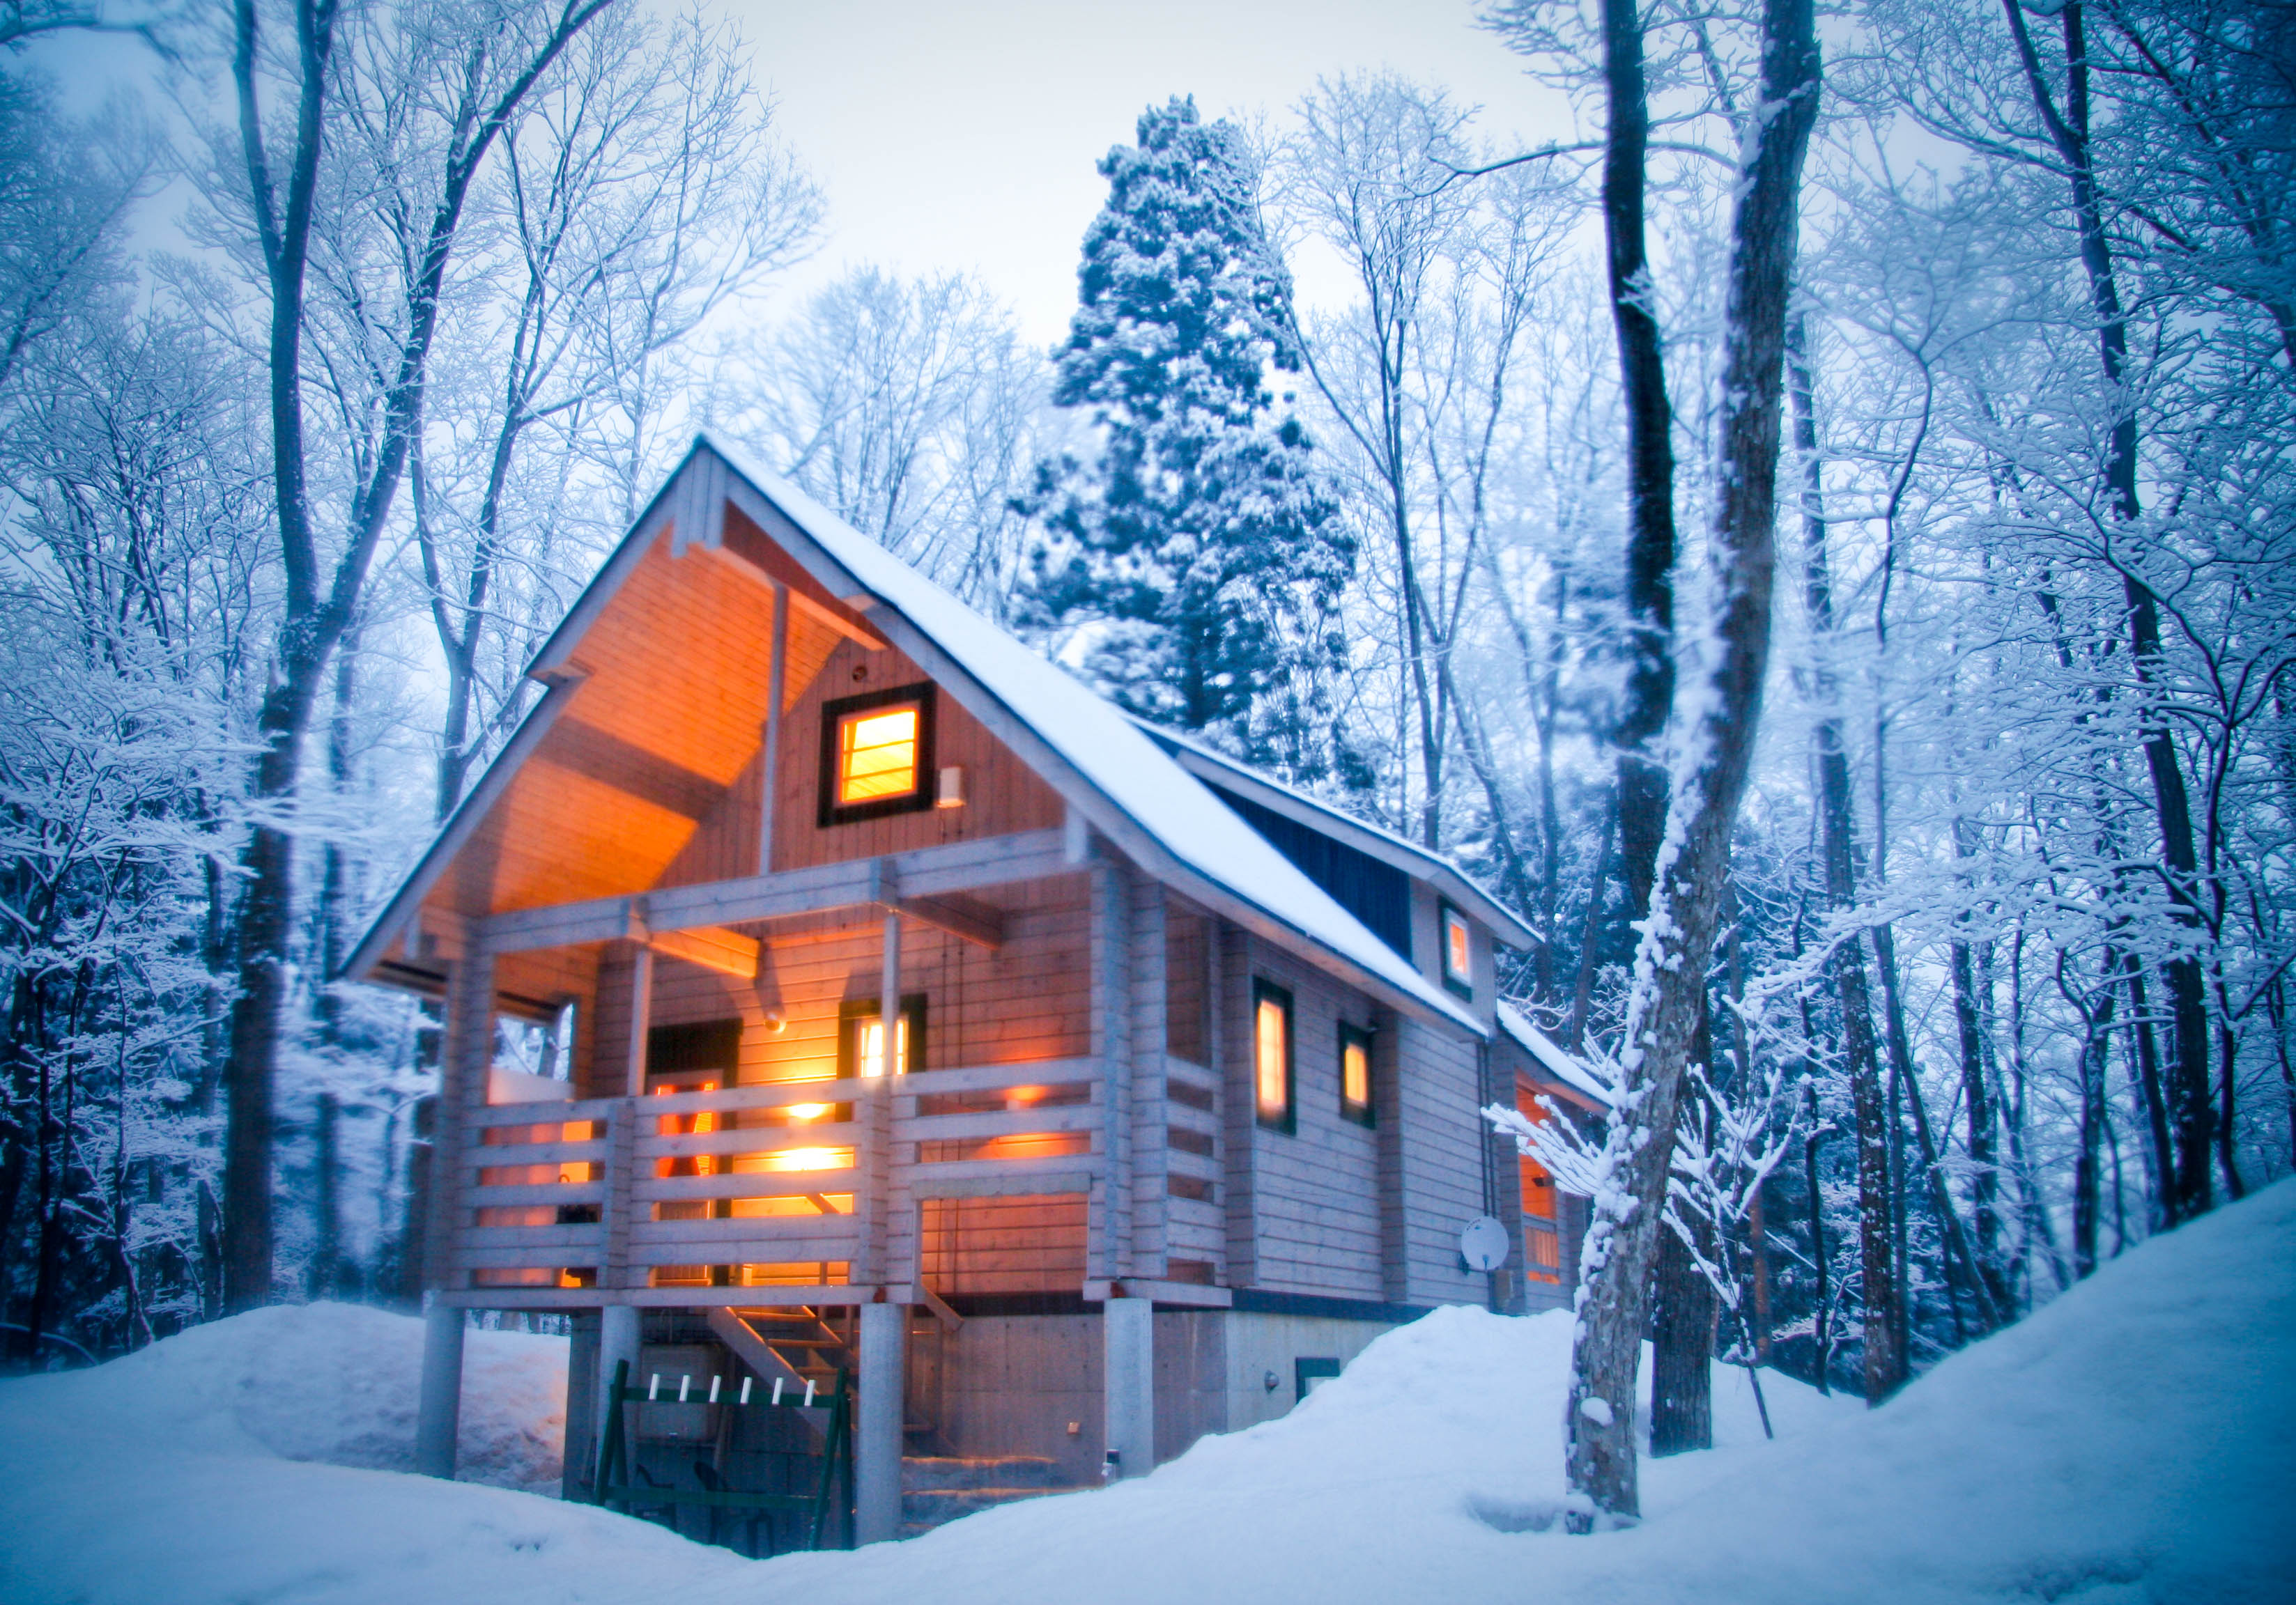 Yuki chalet morino lodge accommodation in hakuba japan for Ski cottage